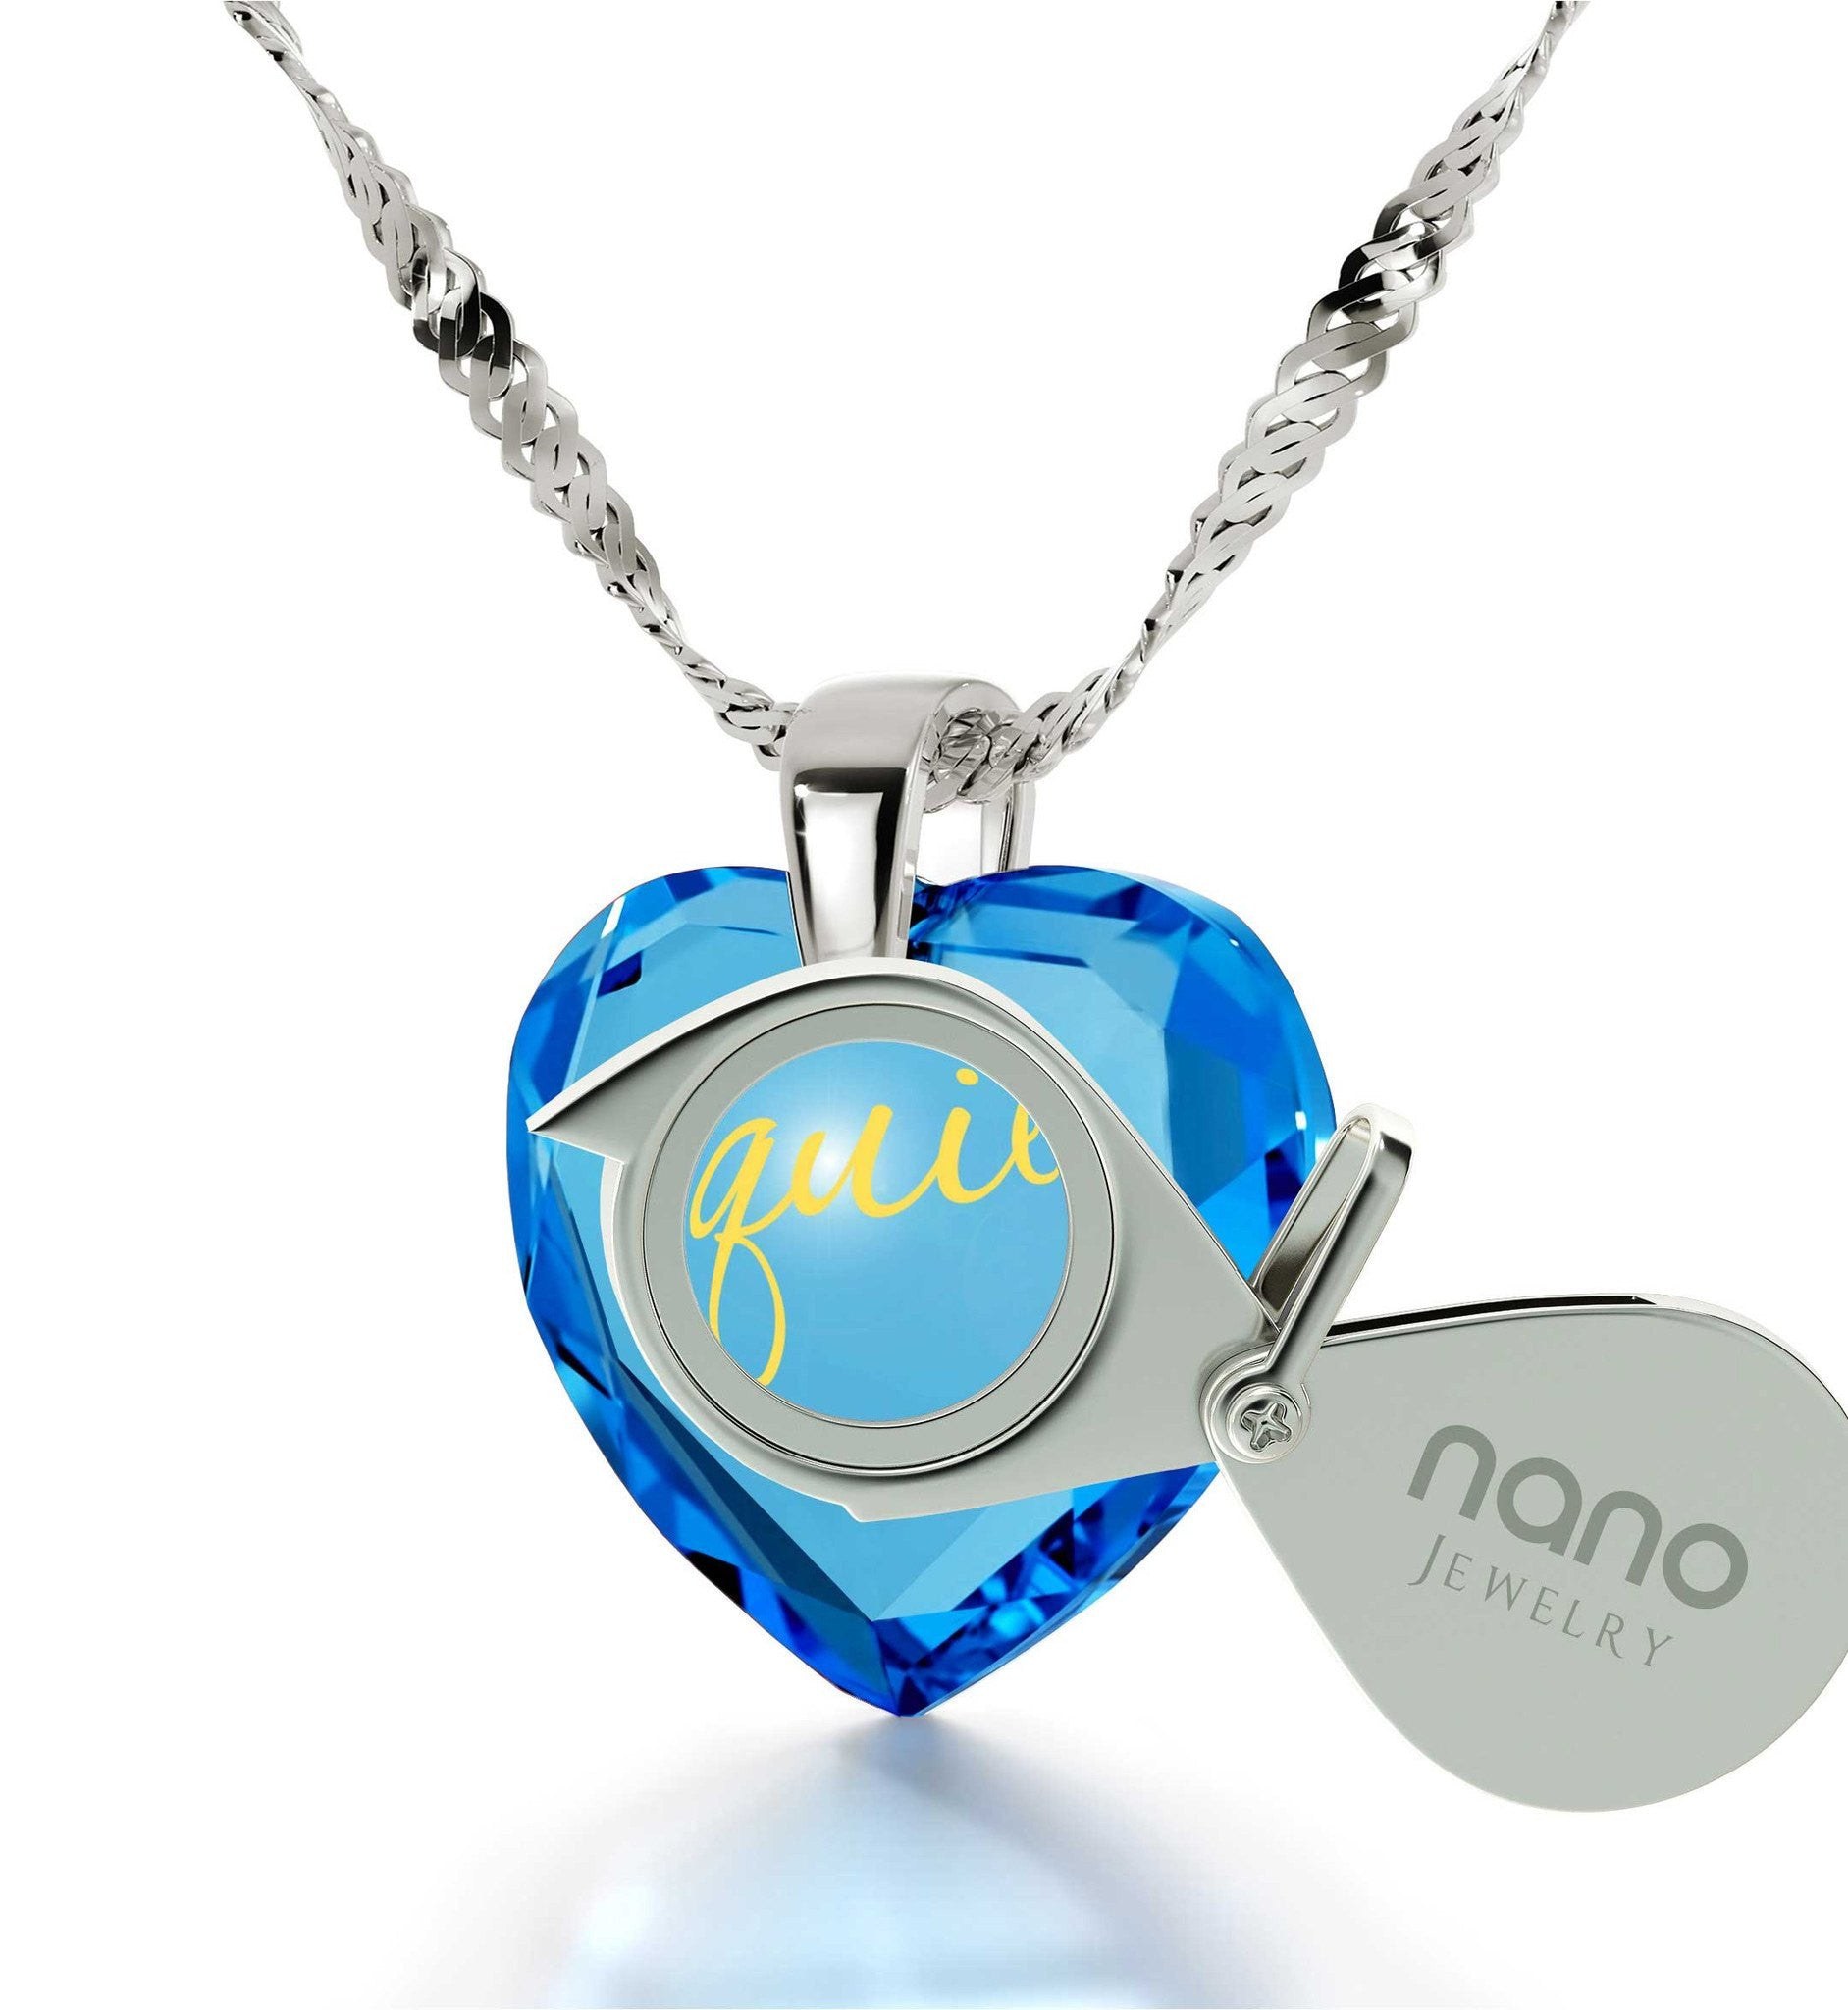 "Cool Presents for Christmas,""I Love You"" in Spanish, Gift Ideas for Young Women, Nano Jewelry"